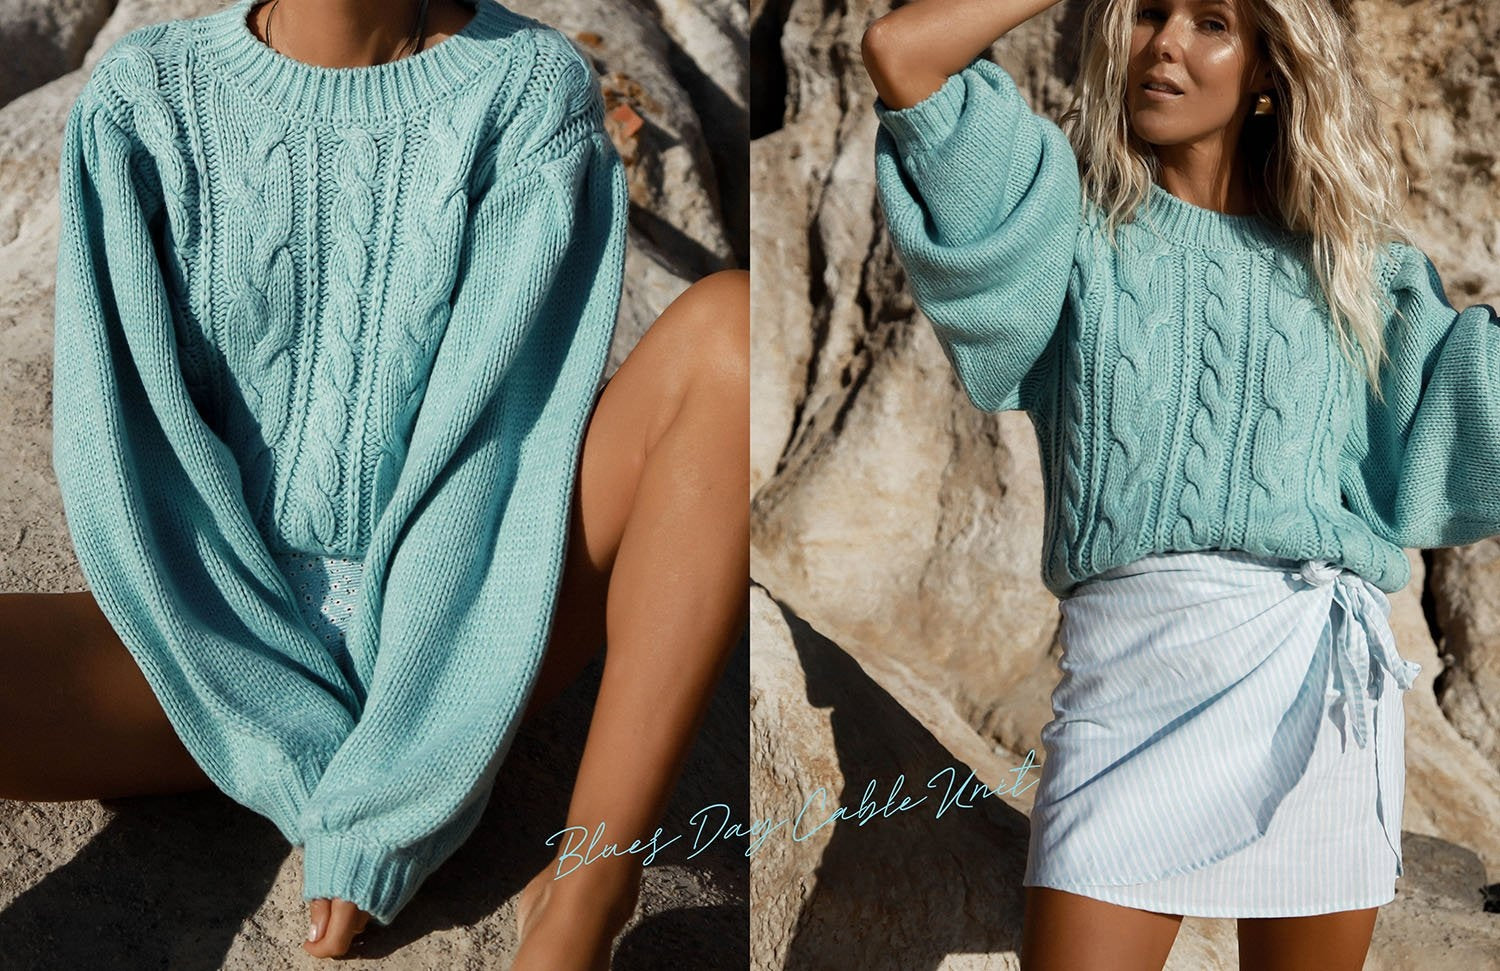 Billabong Womens Bluesday Collection Lookbook